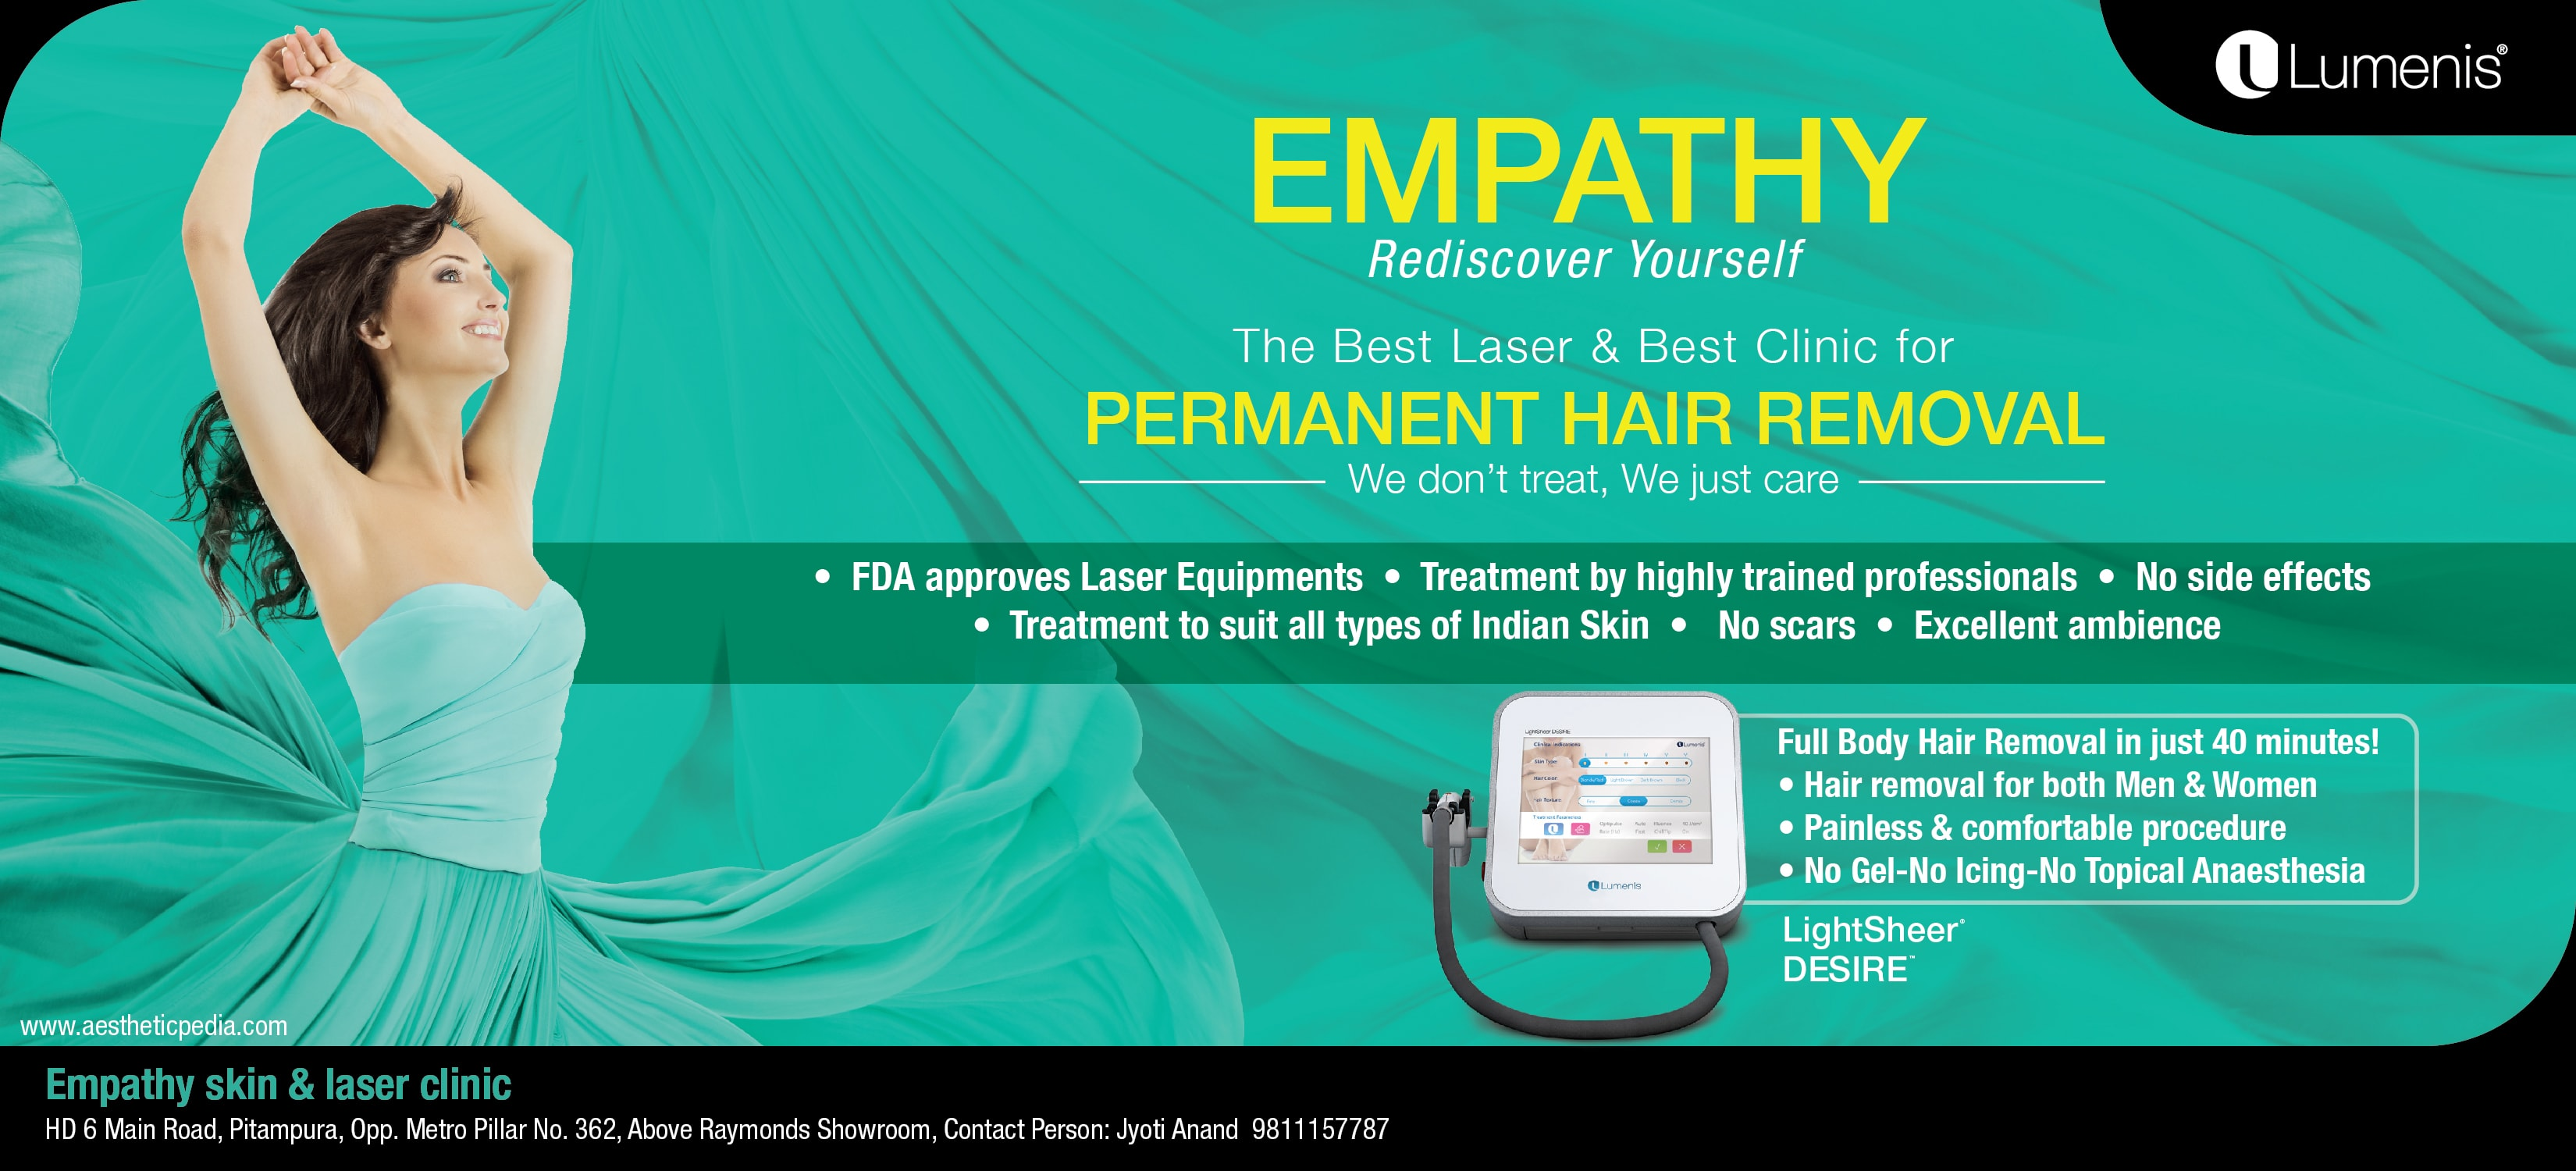 Laser Hair Removal Delhi Full Body Laser Hair Removal Clinic